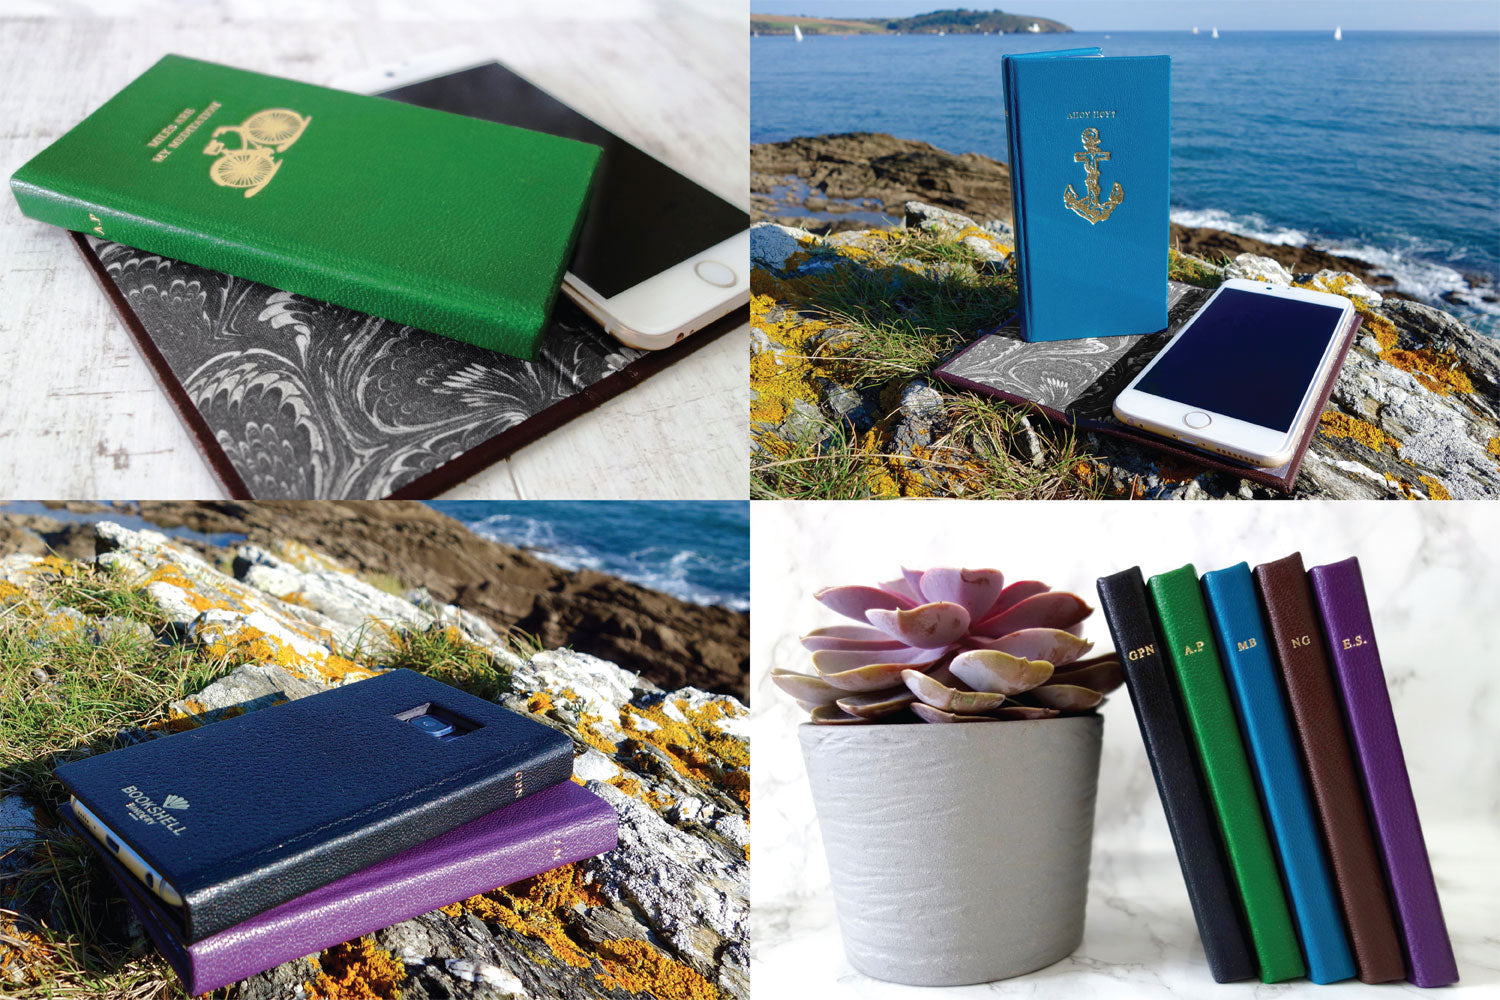 Custom leather phone cases from Bookshell, green leather with a bicycle, blue leather with an anchor